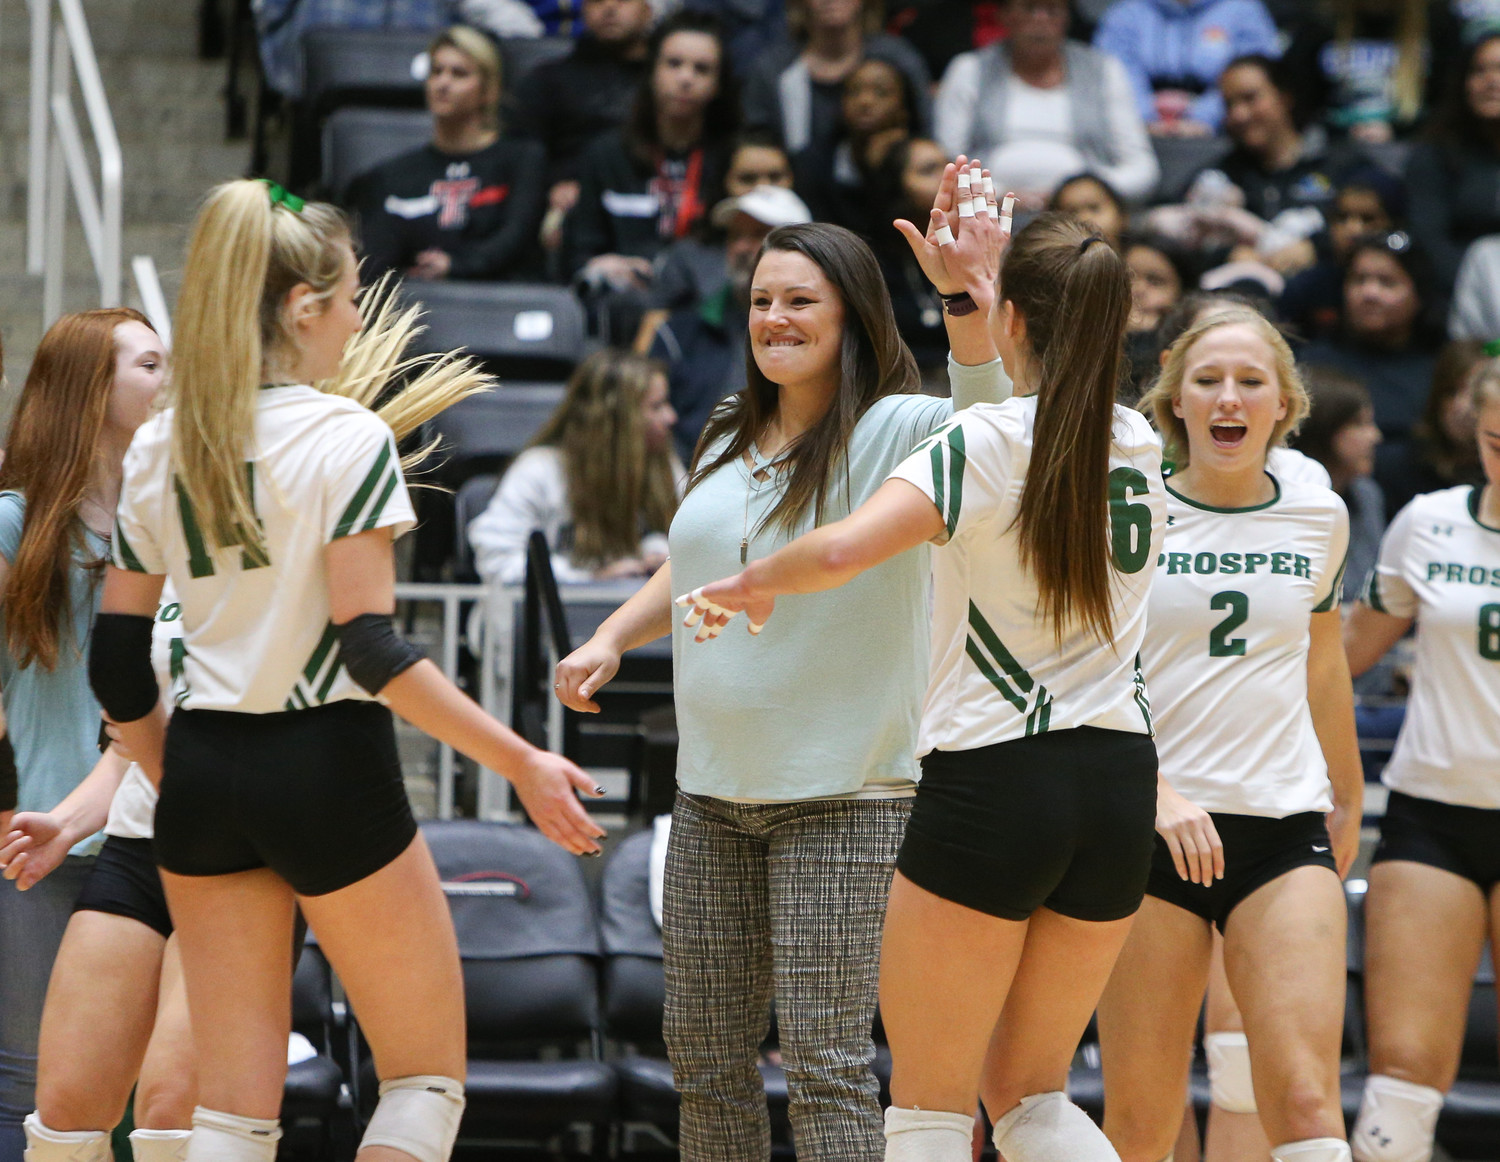 Prosper Eagles head coach Erin Kauffman celebrates a point with her team during the Class 5A high school volleyball state final between Rouse High School and Prosper High School at Curtis Culwell Center in Garland, Texas, on November 18, 2017. Prosper won the match in five sets, (25-18, 21-25, 18-25, 25, 23, 16-14) to win the 5A state championship.